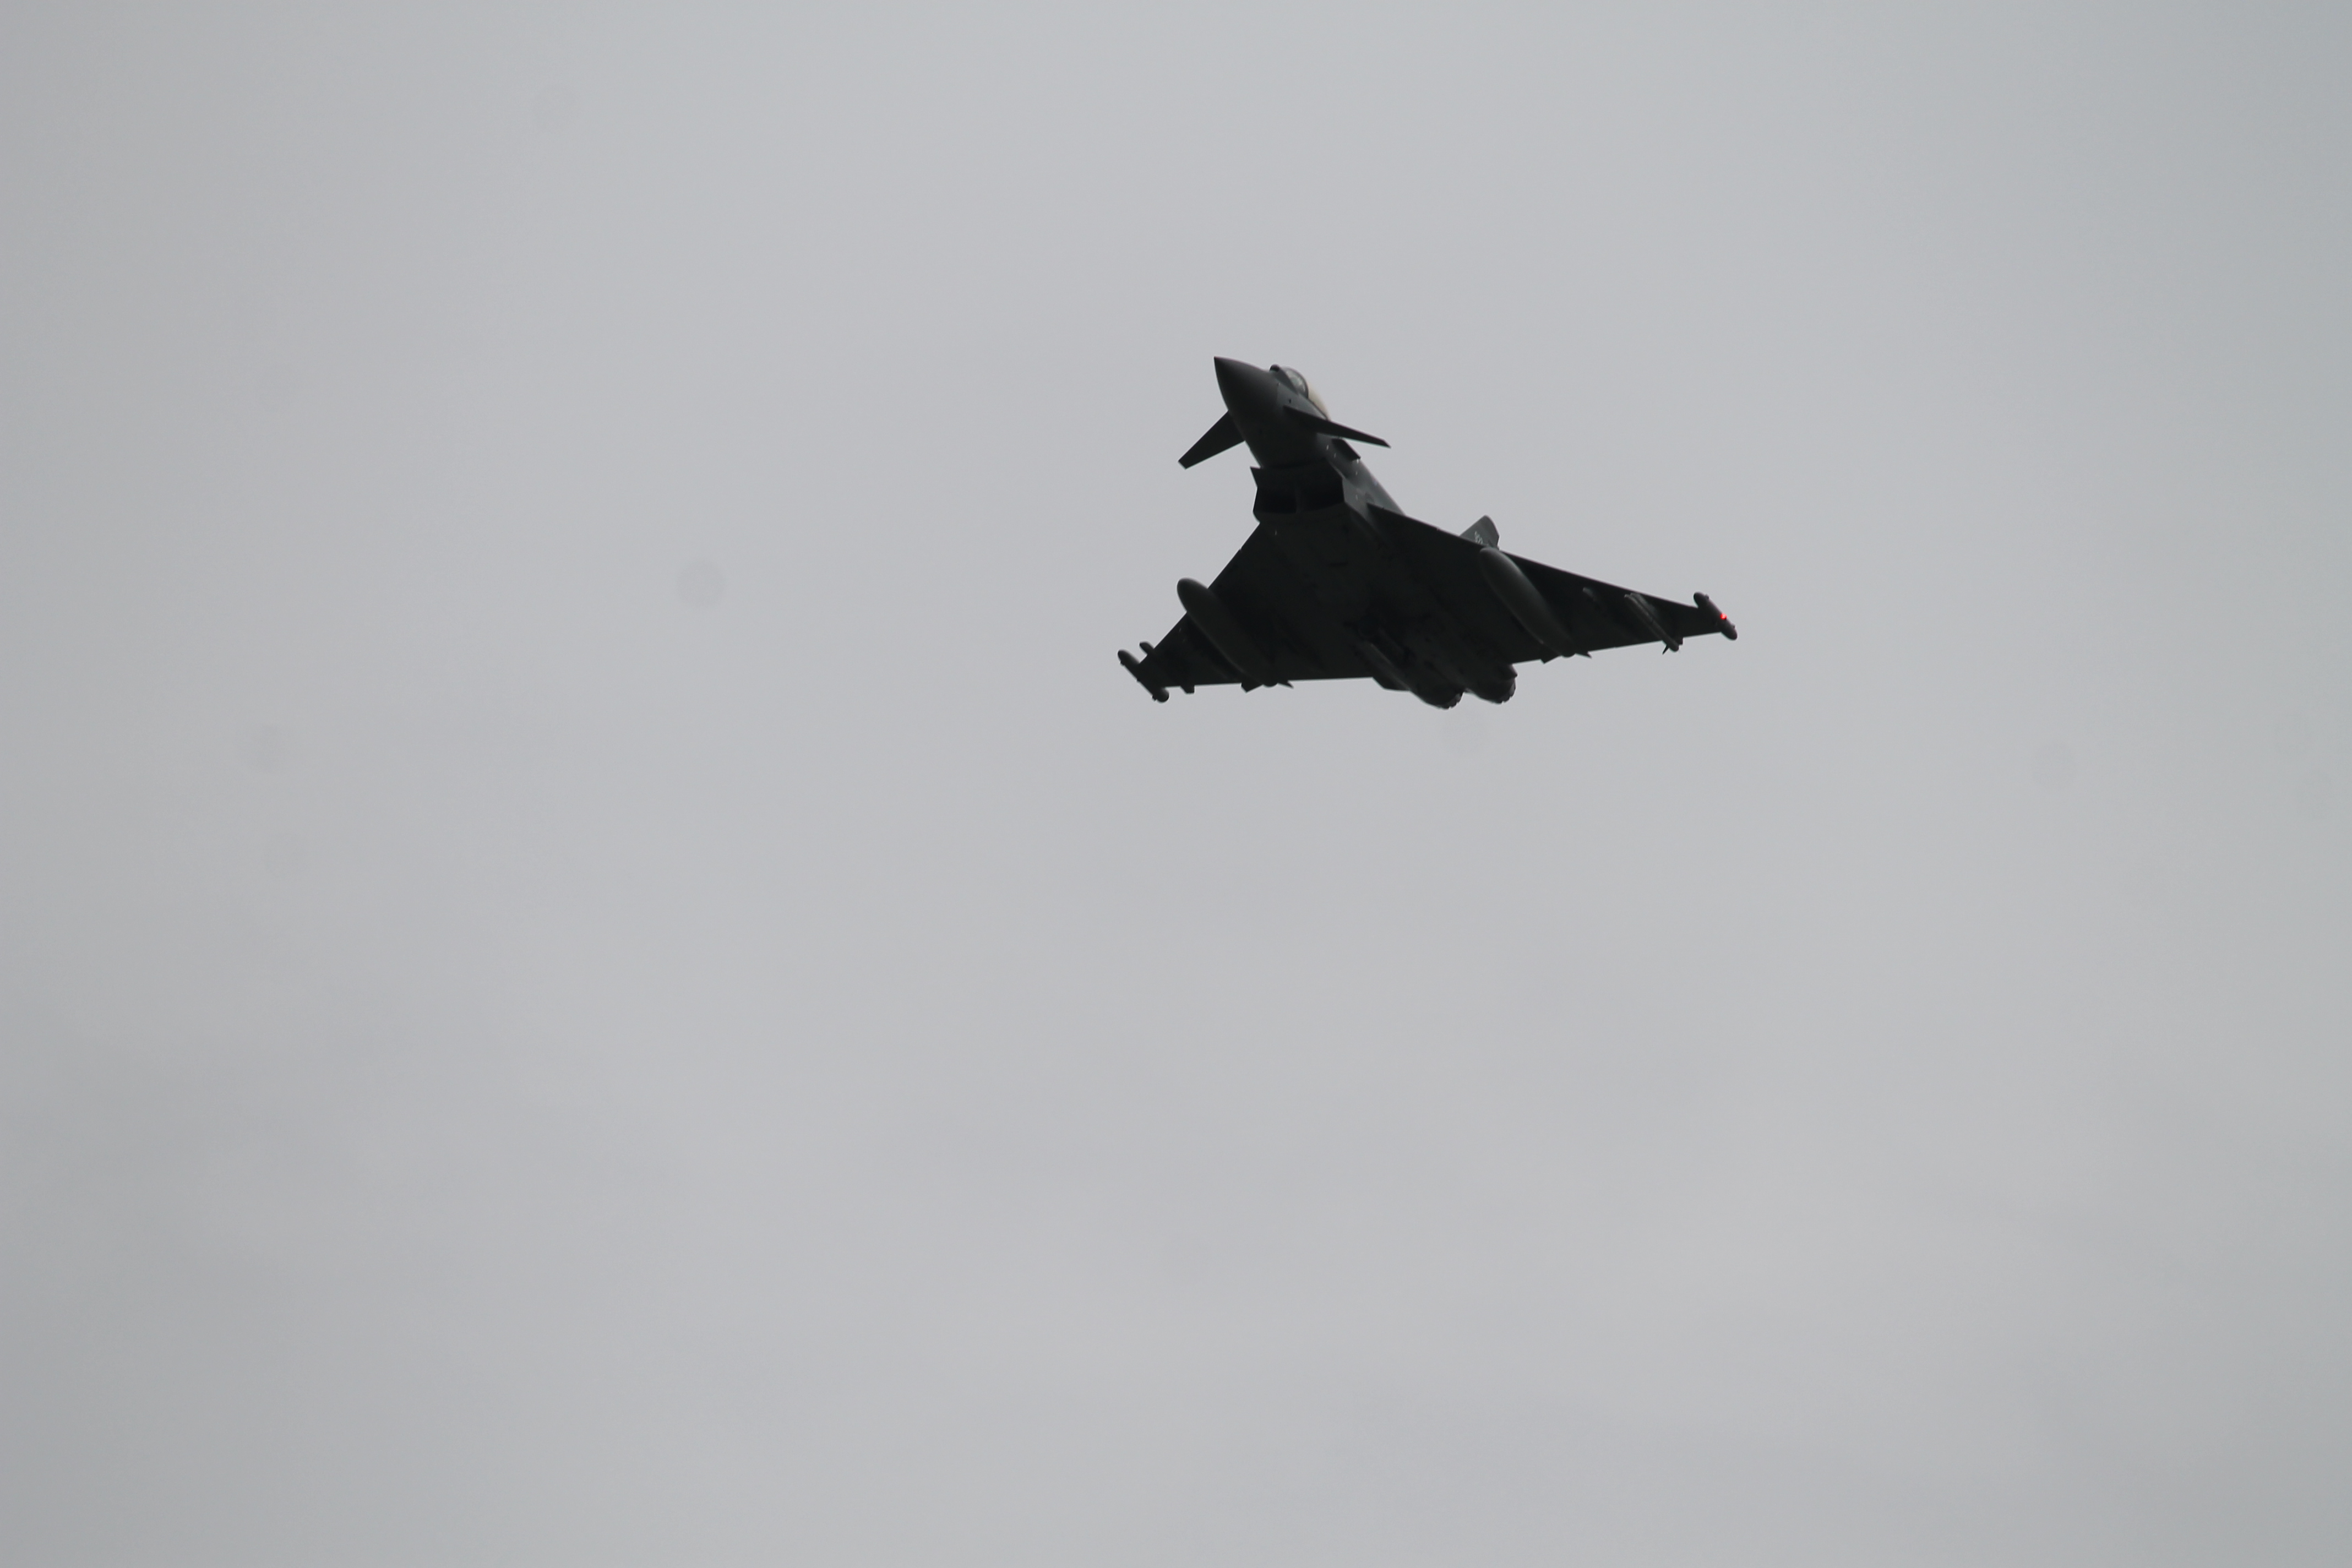 A Eurofighter Typhoon jet soars over the bridge on the Danube. (Jen Judson/Staff)